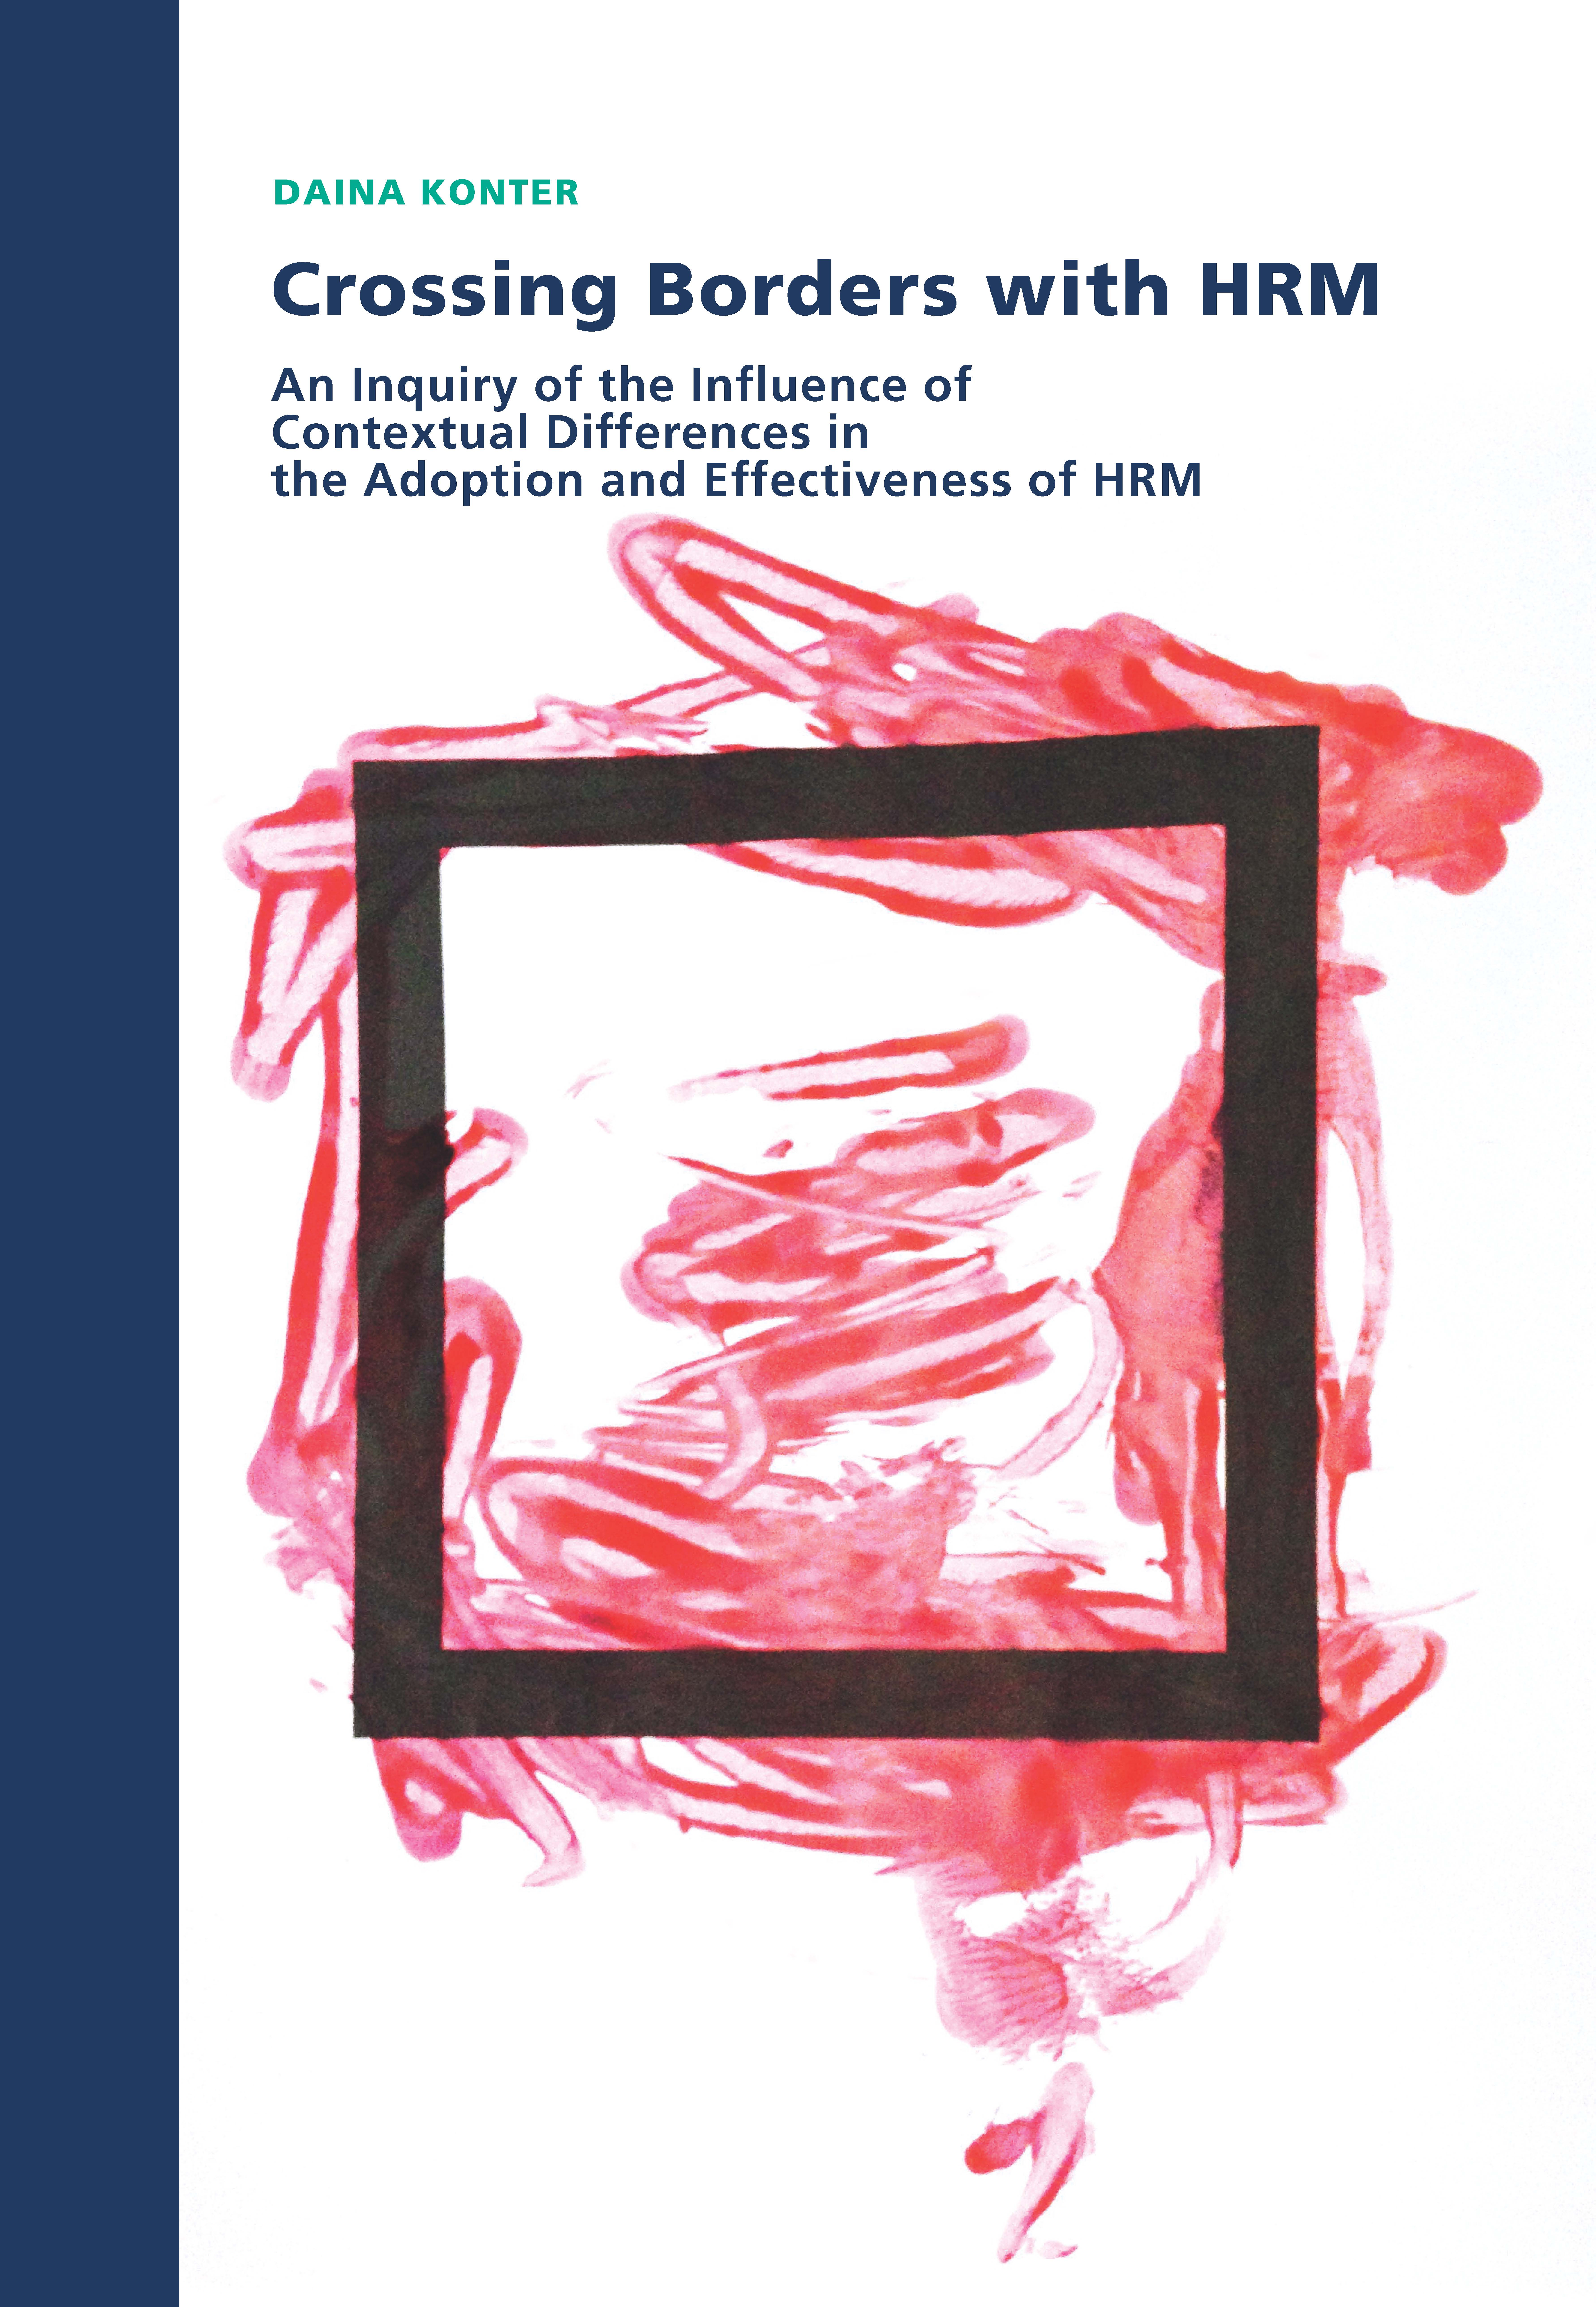 Crossing borders with HRM: An inquiry of the influence of contextual differences in the adoption and effectiveness of HRM